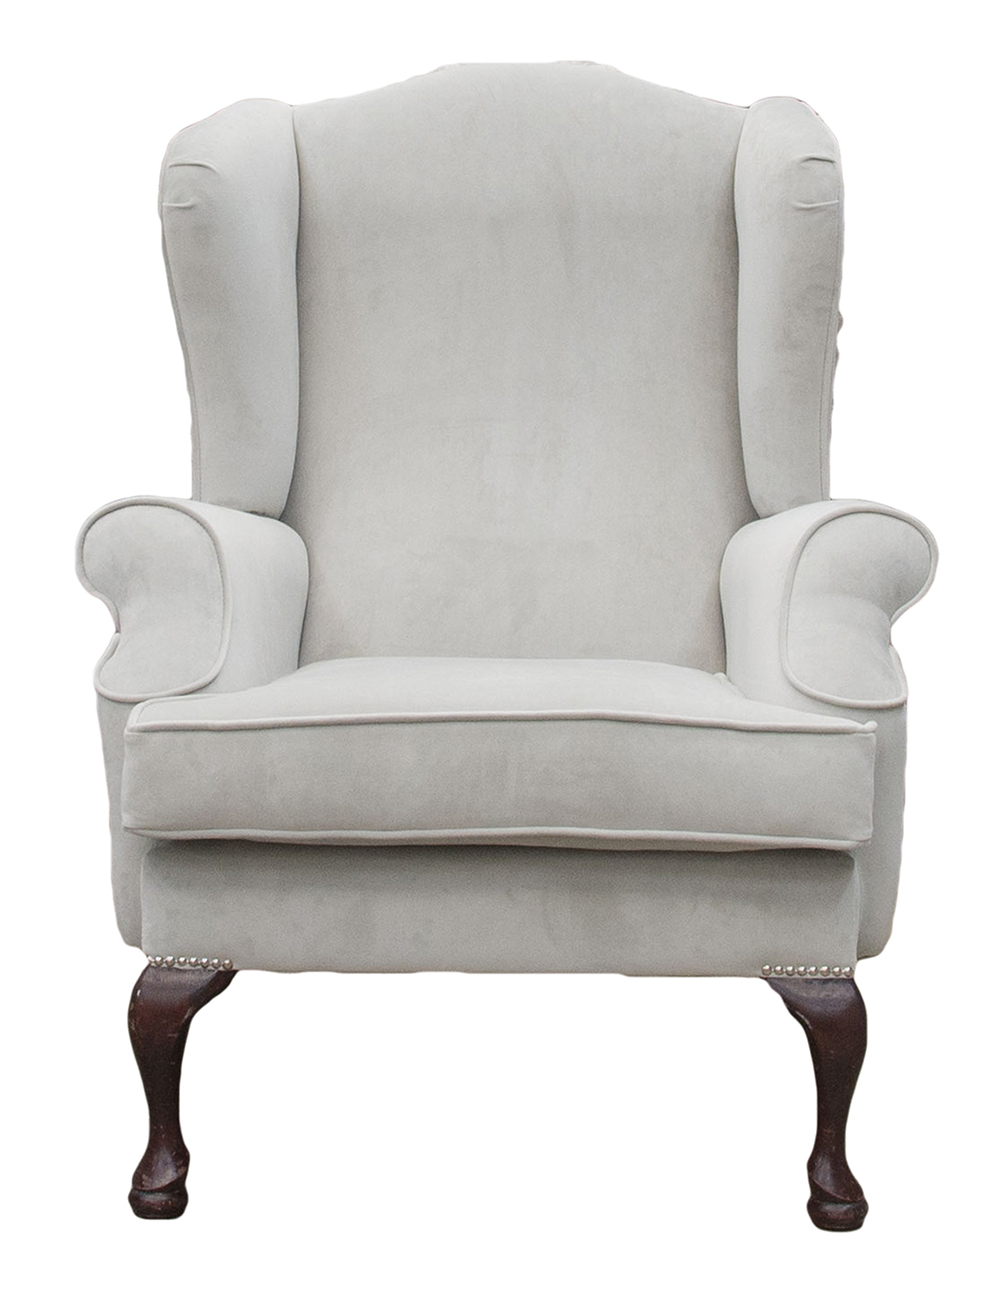 Queen Anne Chair in Aosta Grey – Silver Collection